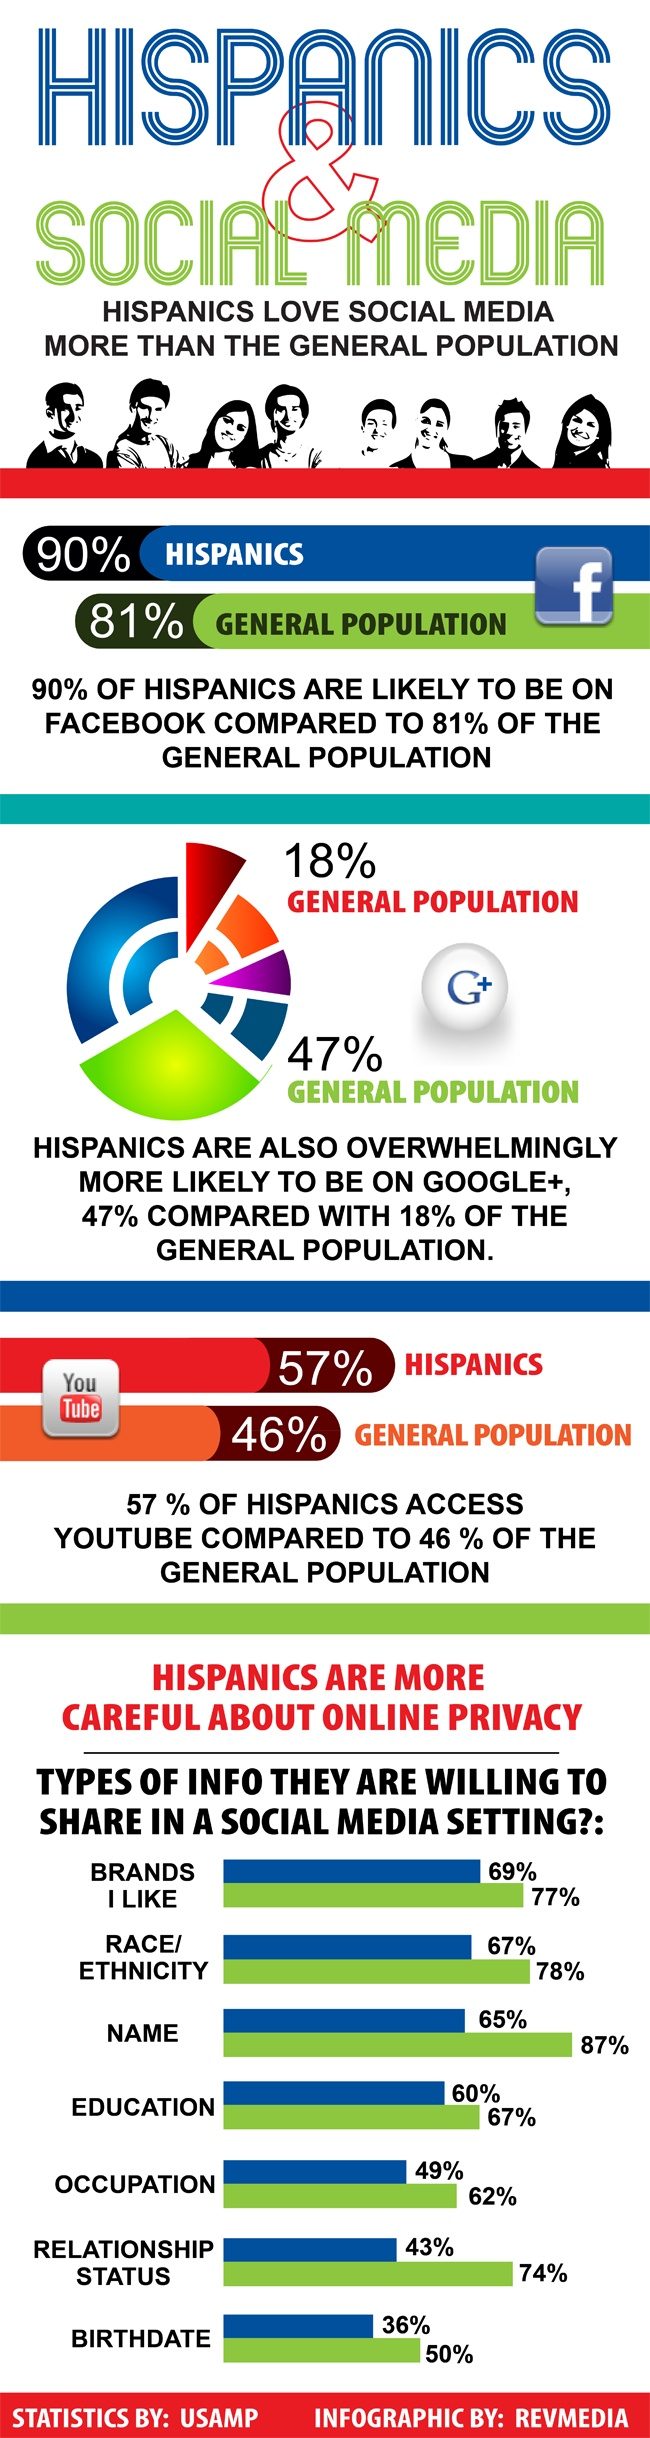 According to this source, Hispanics love social media more than the general population.